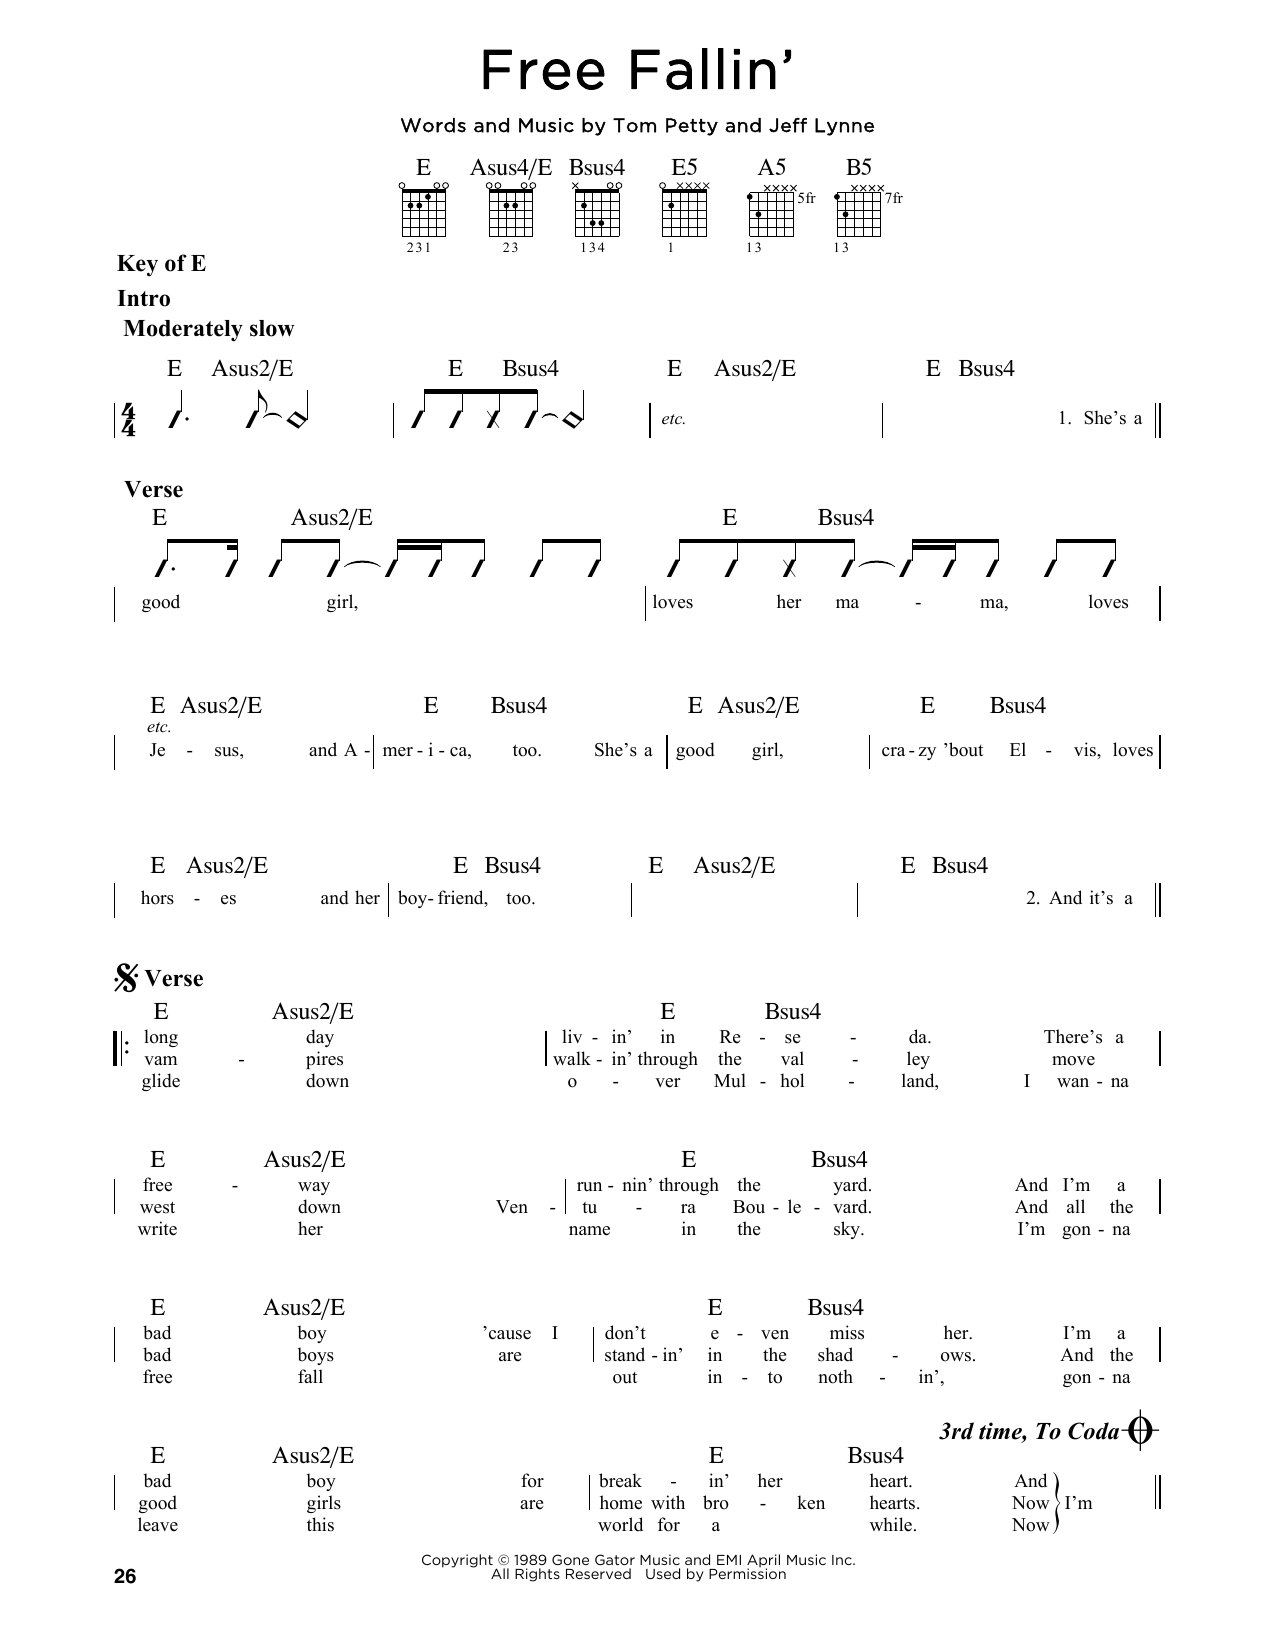 Free Fallin Sheet Music To Download